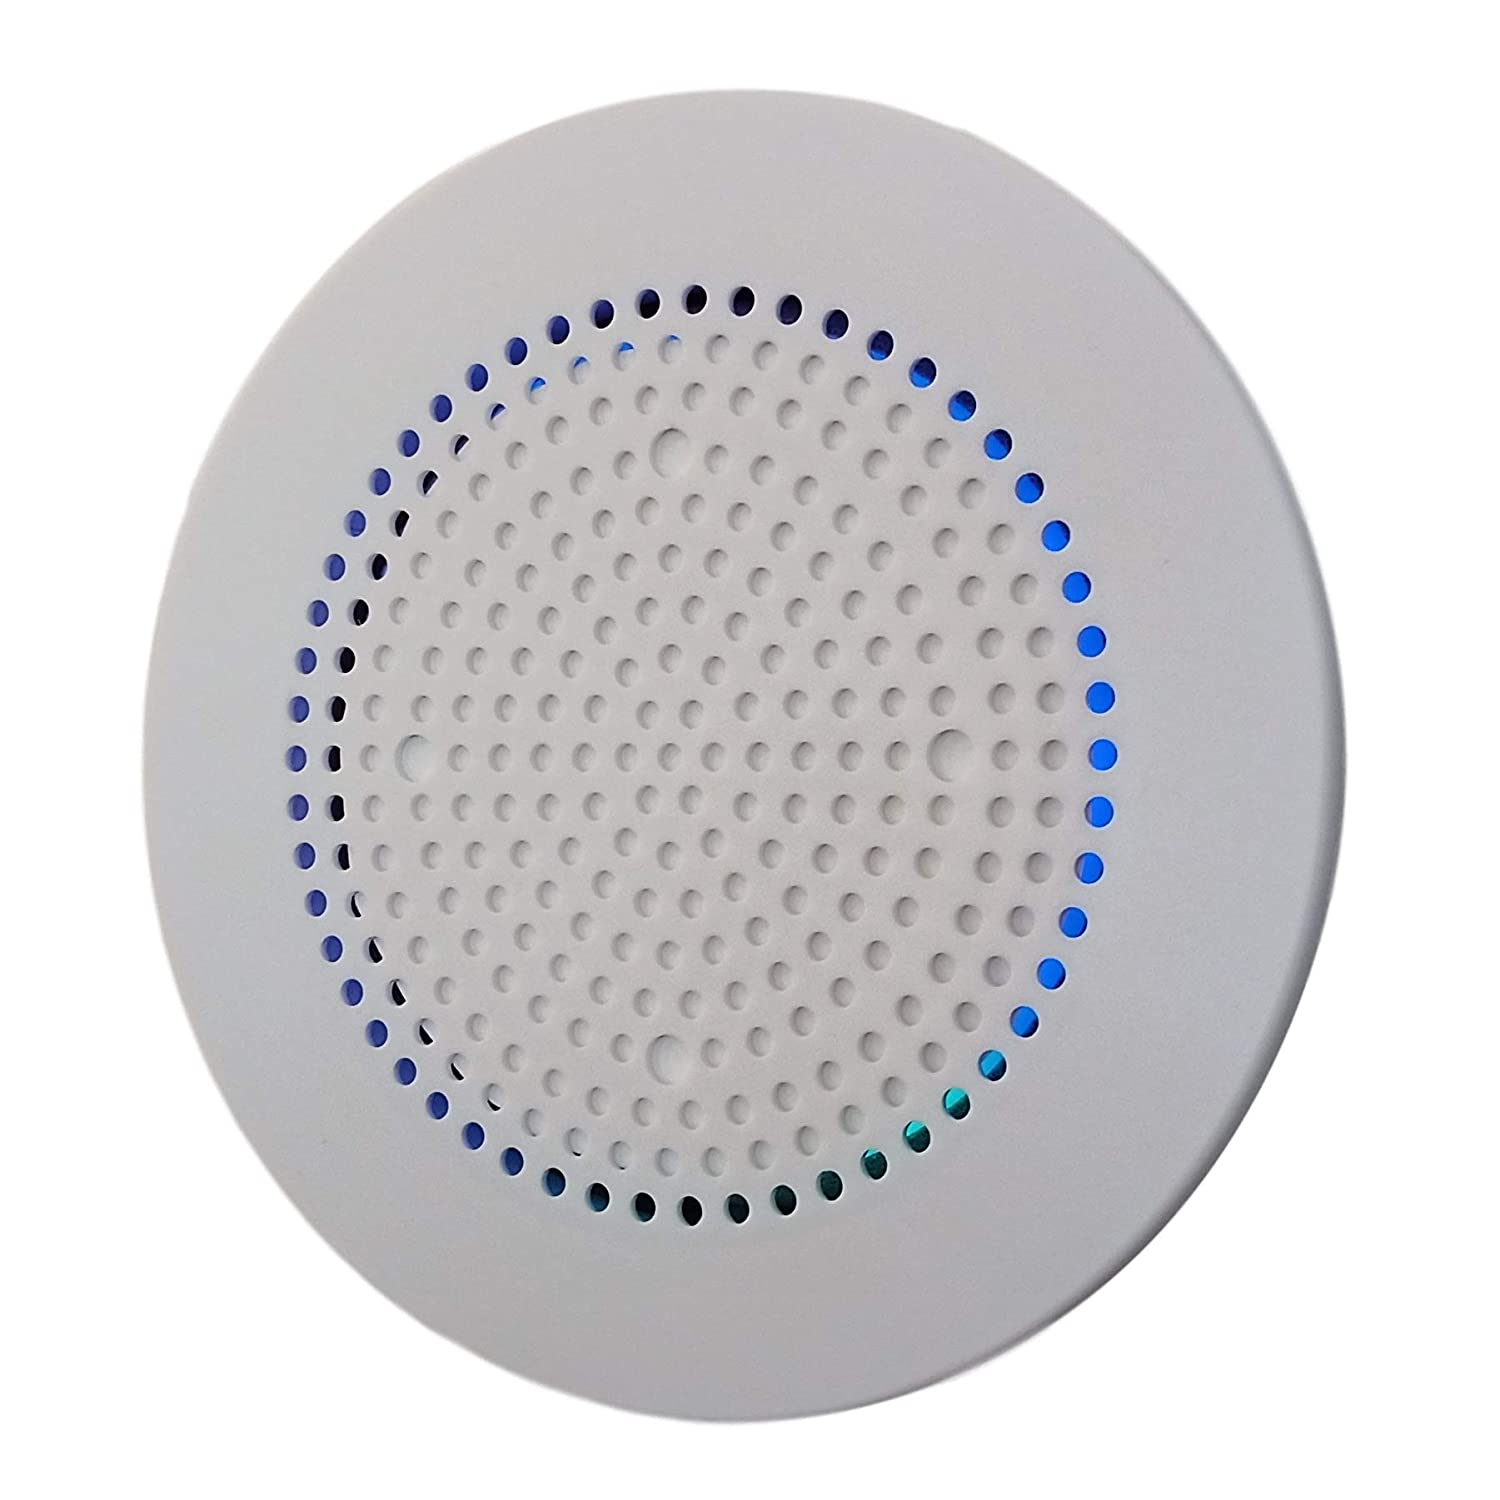 Mount Genie Flush Mount 3 | Built-in Wall or Ceiling Mount for Voice Assistants Bluetooth Speakers [Newest 2019 Model] | Includes Optional Grill. Award Winning Design. Fantastic Sound (White, 1-Pack)